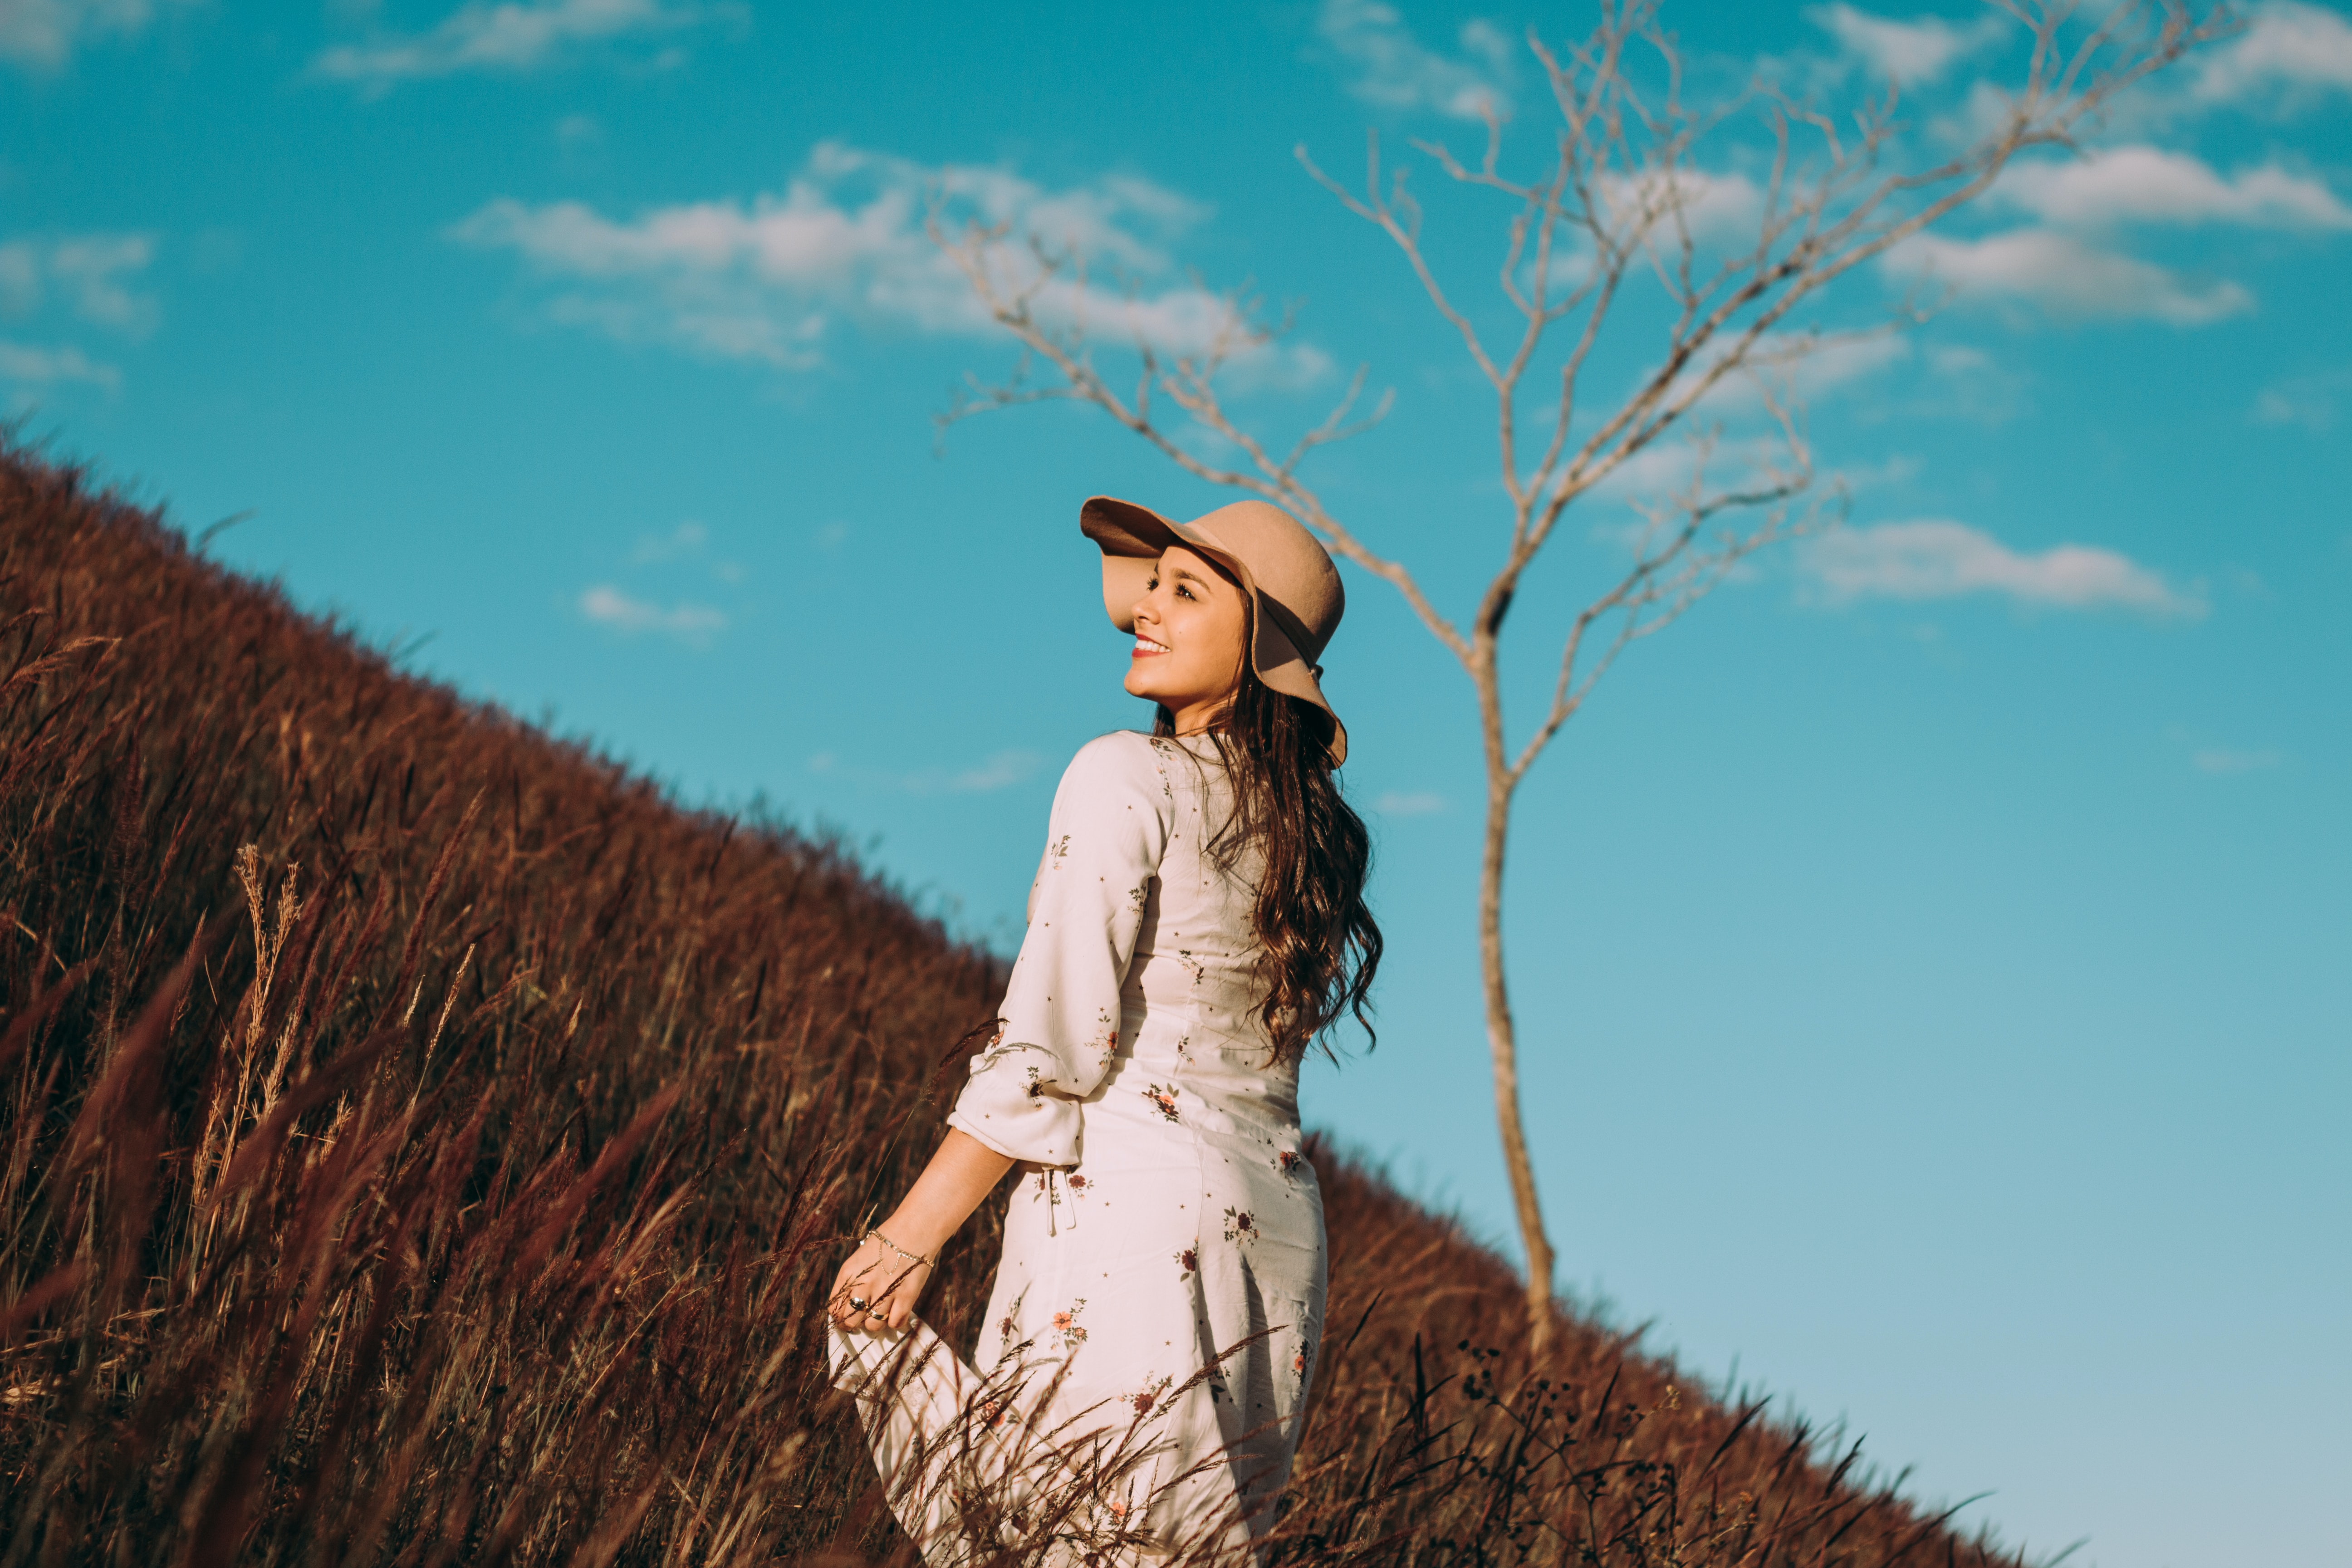 A woman in a hat and white dress smiles in a field against a blue sky